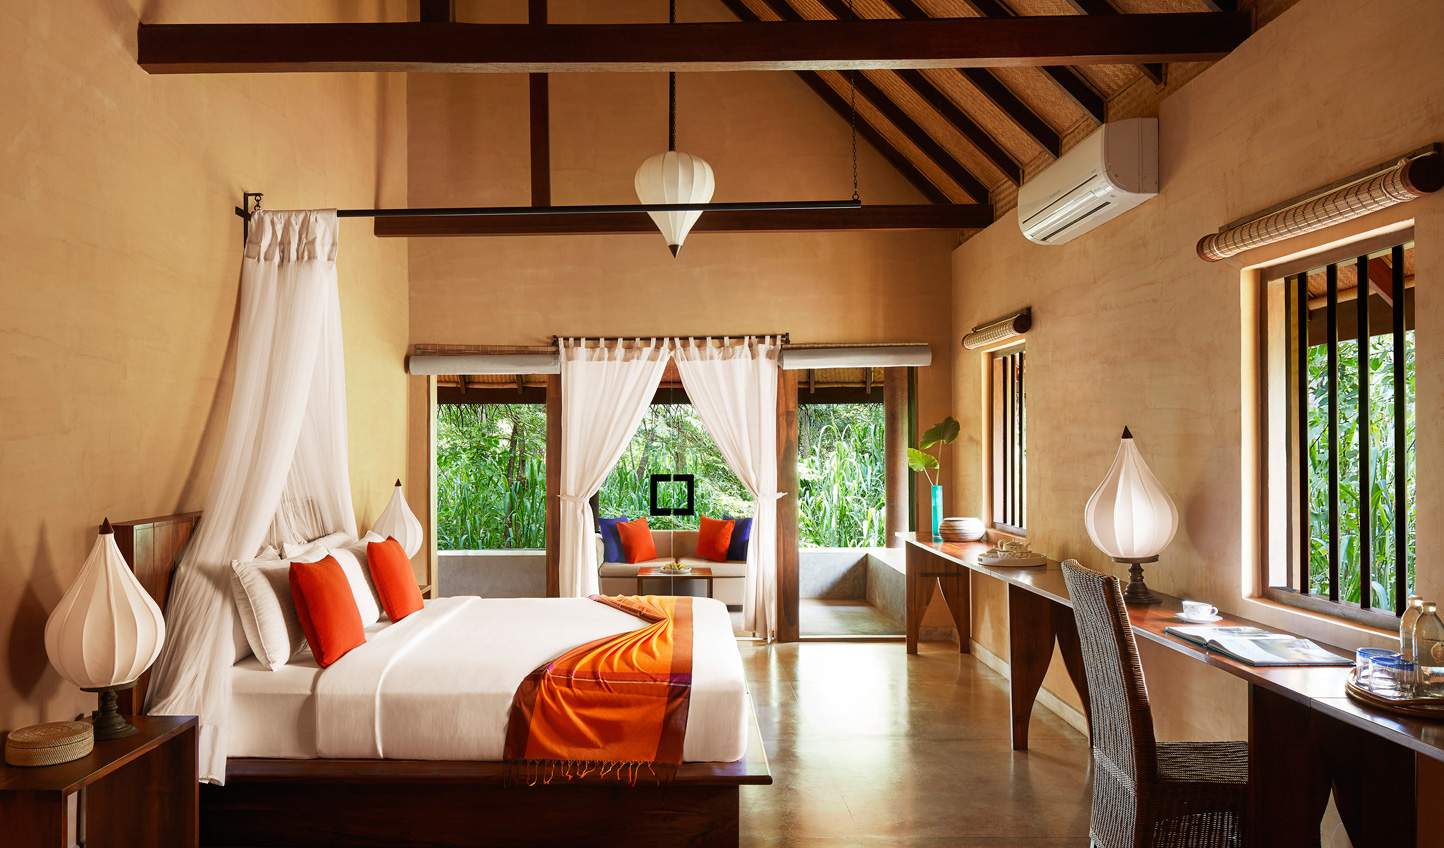 Traditional Sri Lankan design with bursts of colour in your villa